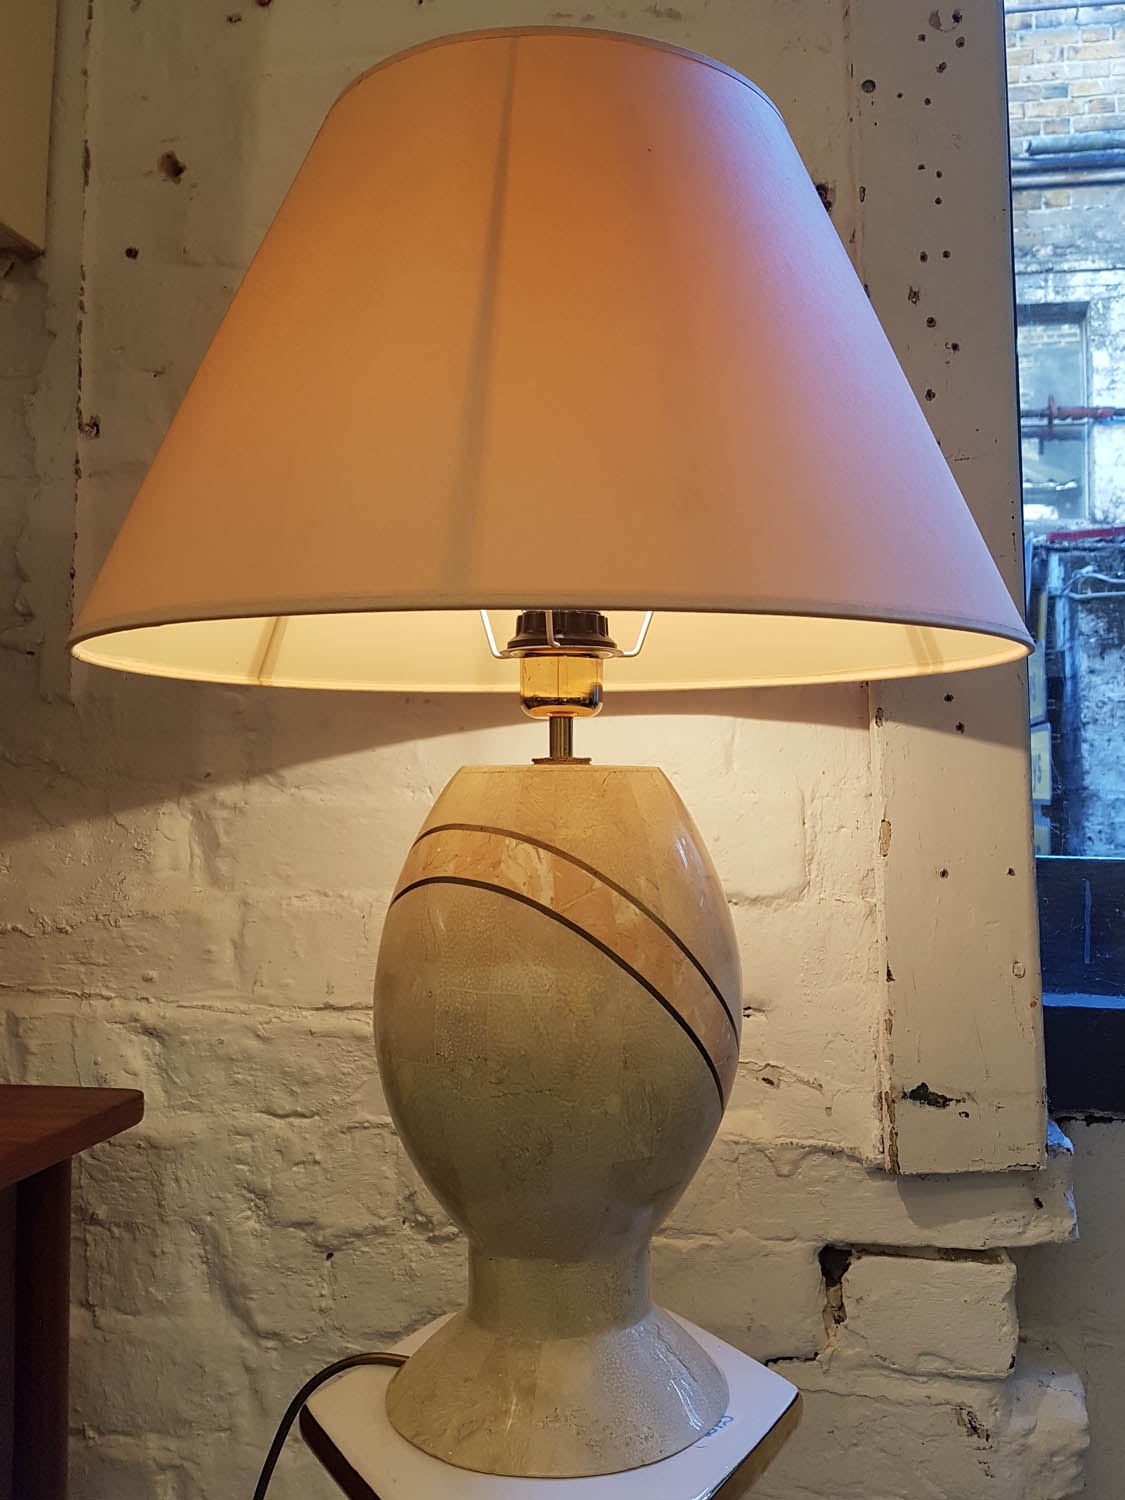 Junk Deluxe Marble And Brass Table Lamp Rewiring A Stunning Tessellated With Peachy Pink Shade One Small Stain To The Vintage As Photographed Minor Fleabite Chips